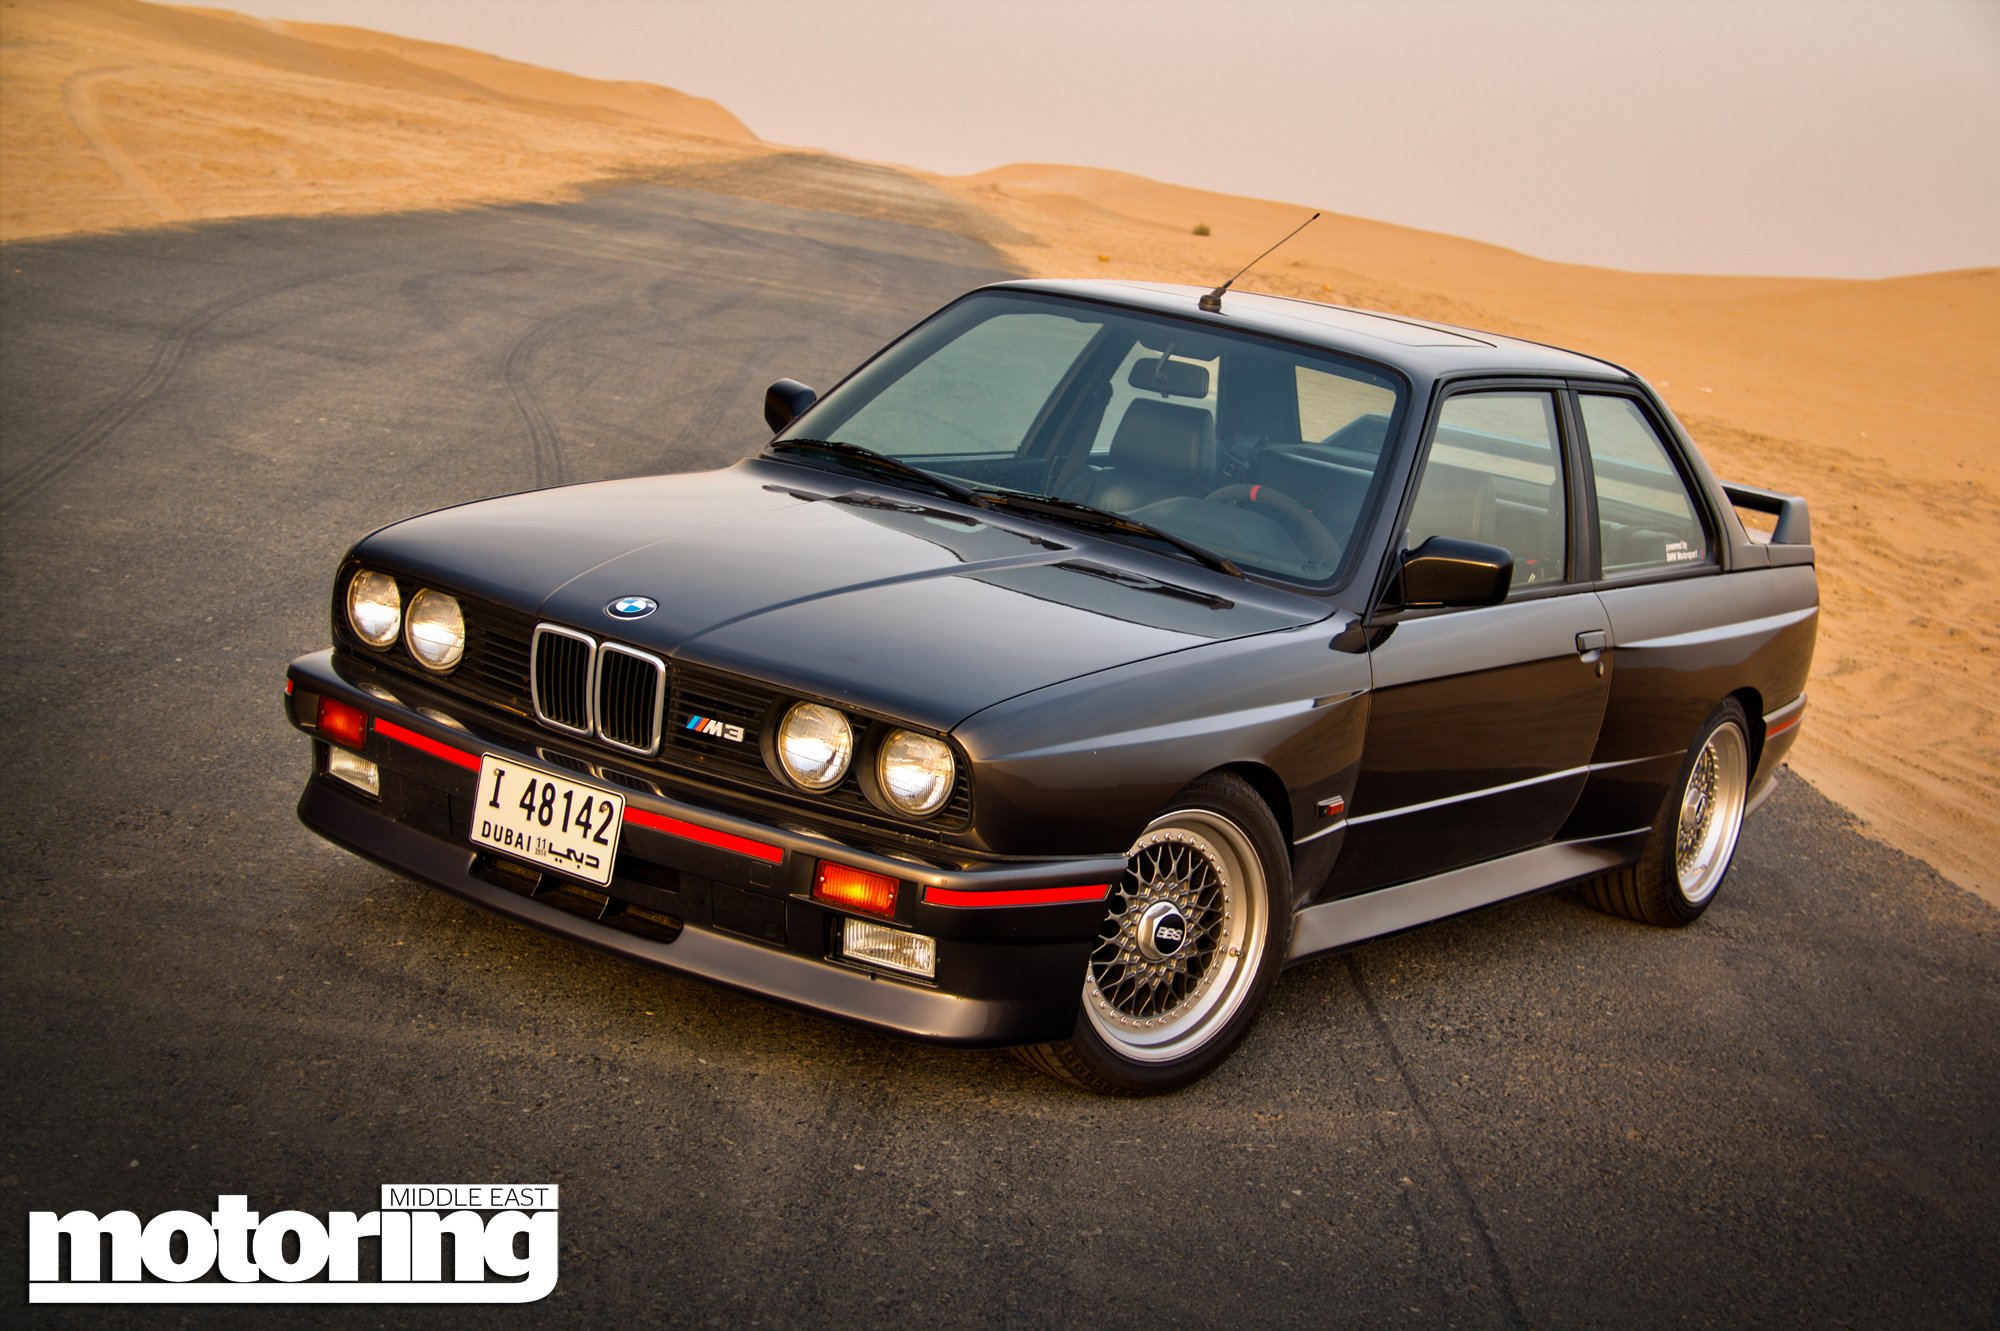 1987 bmw e30 m3 driven in dubai video motoring middle east car news reviews and buying guides. Black Bedroom Furniture Sets. Home Design Ideas